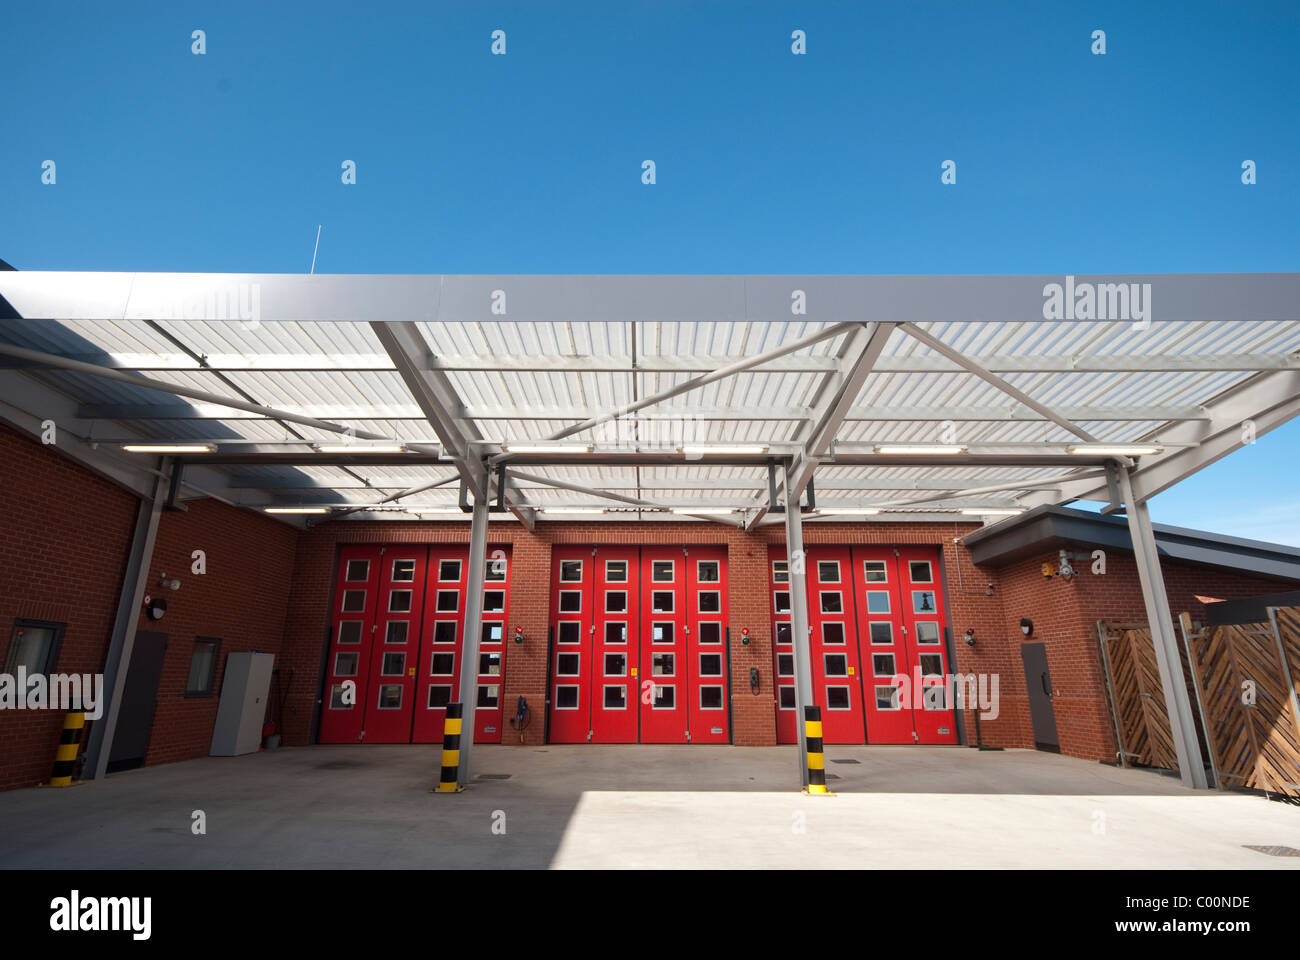 Marshes End Fire Station, Dorset Fire and Rescue Service, Poole fire engine exit doors - Stock Image